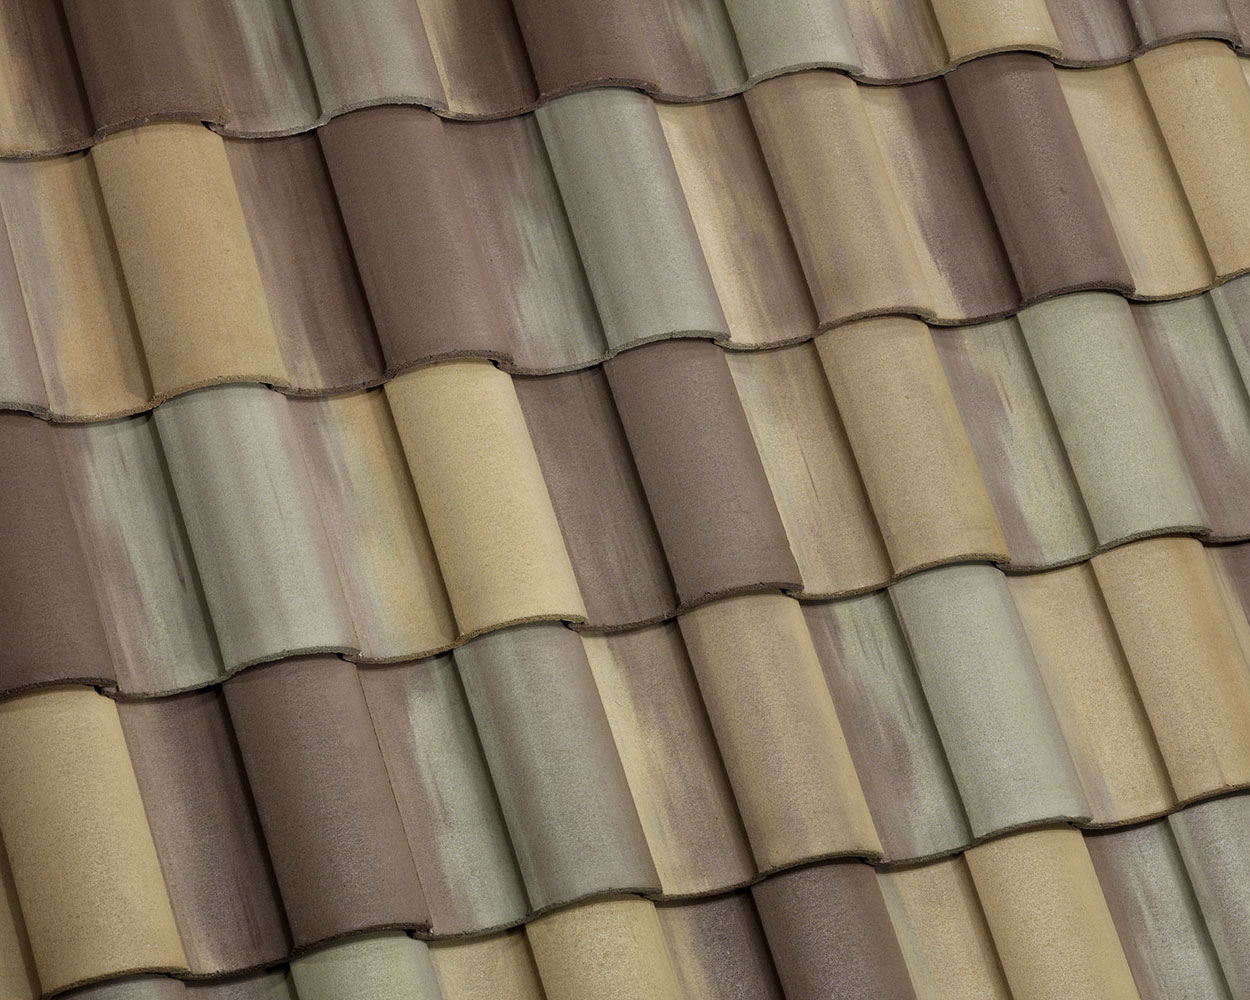 Rancho cordova tile roof color swatch